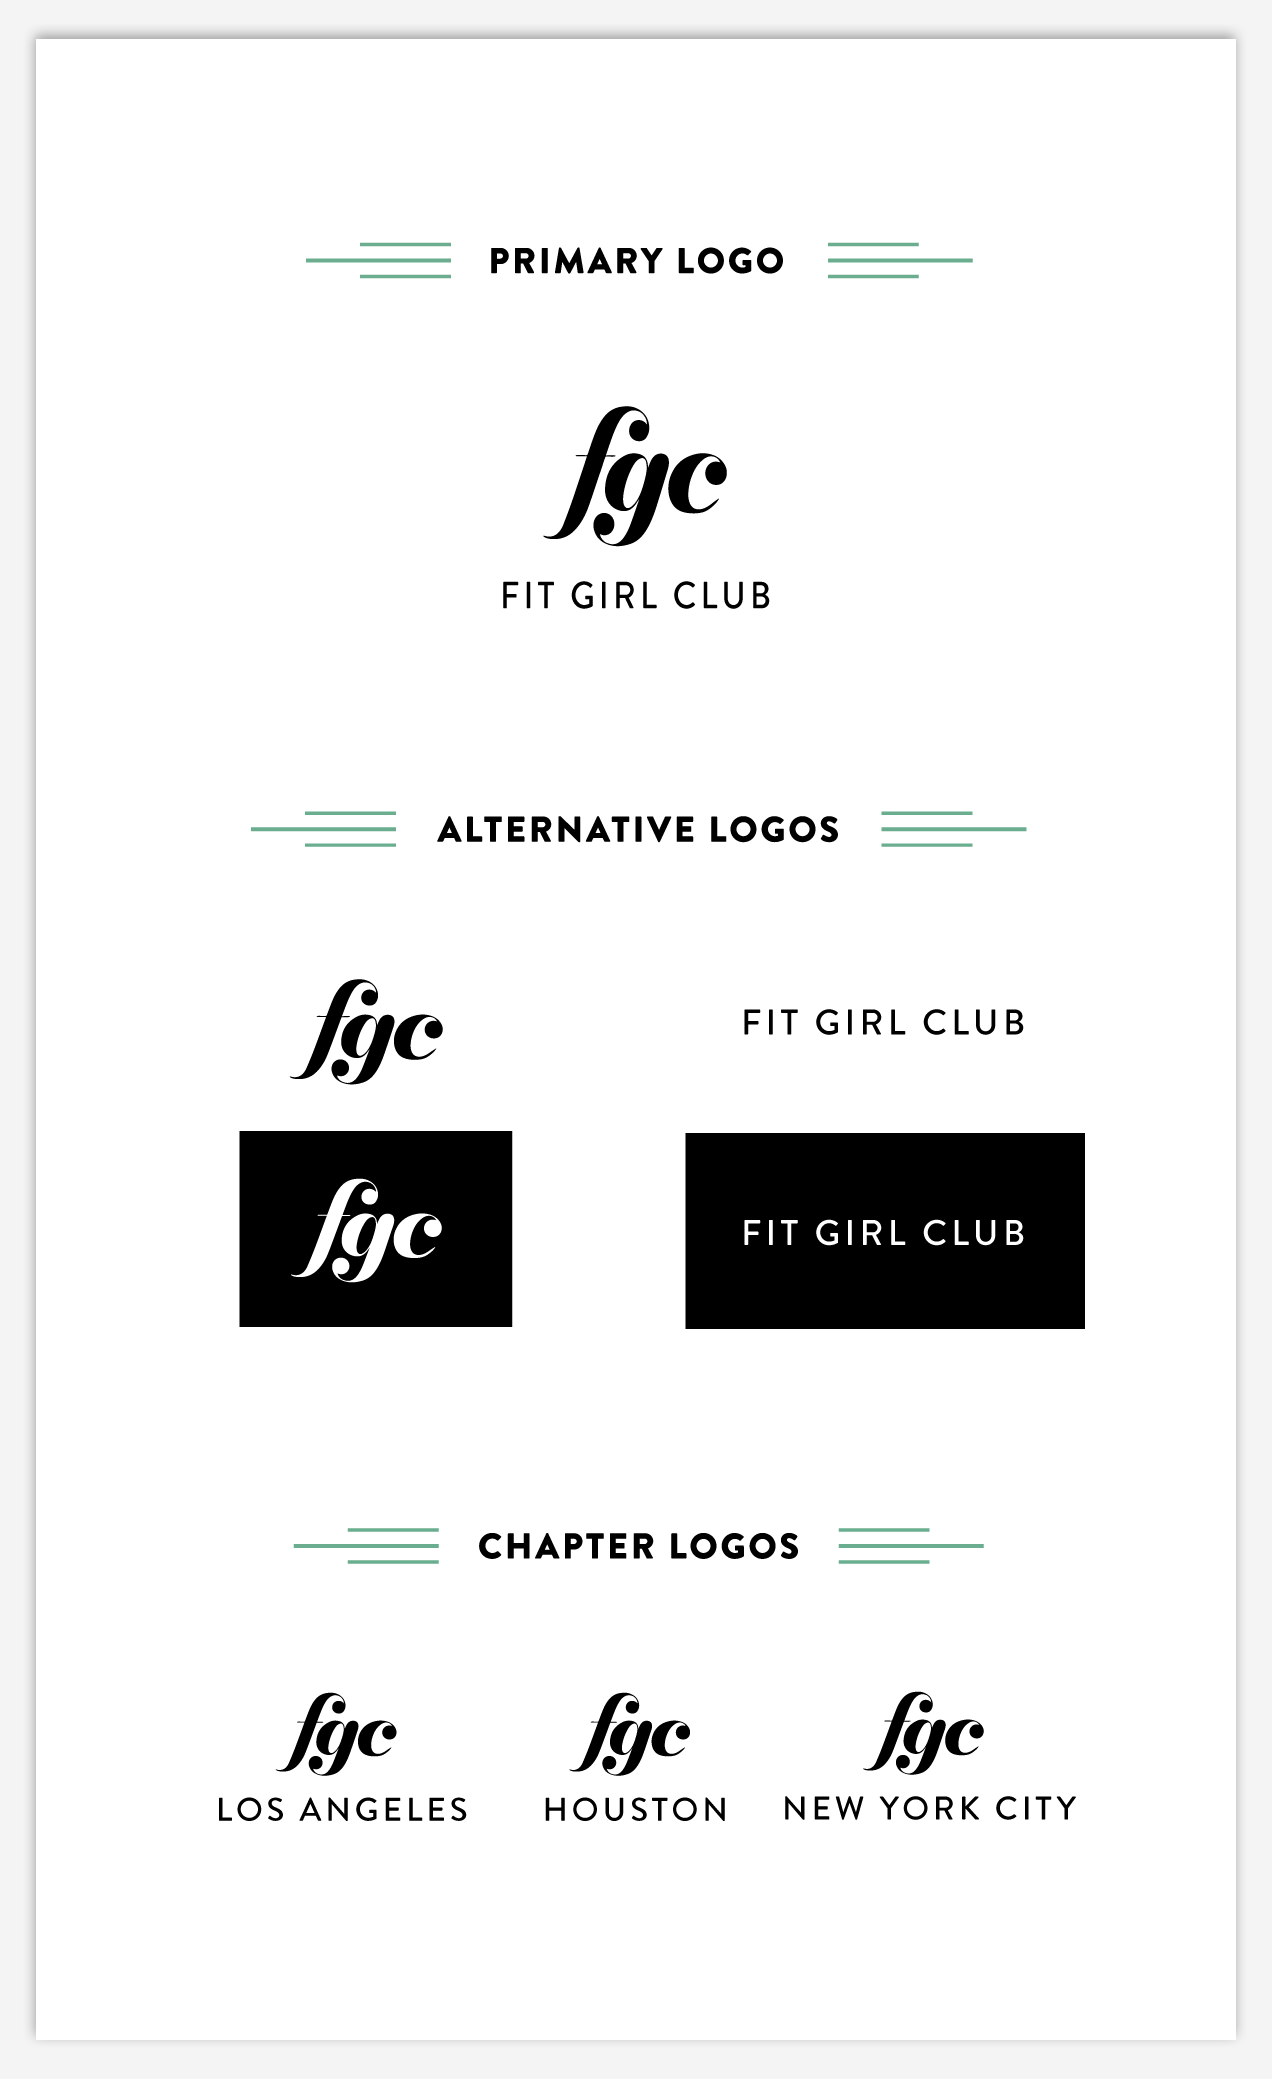 """I decided on this logo since it created a sense of a high-end, customized product with the modified serif- font for the """" fgc """" while still noting the playfulness and movement of the original logo by italicizing and making it lower case. The height differences in each of the letters resembles the different types of women and body shapes that are included in this club and allows for a sense of inclusivity as well. Both the letter logo and the spelled out logo can be used interchangeably depending on the layout of the design."""